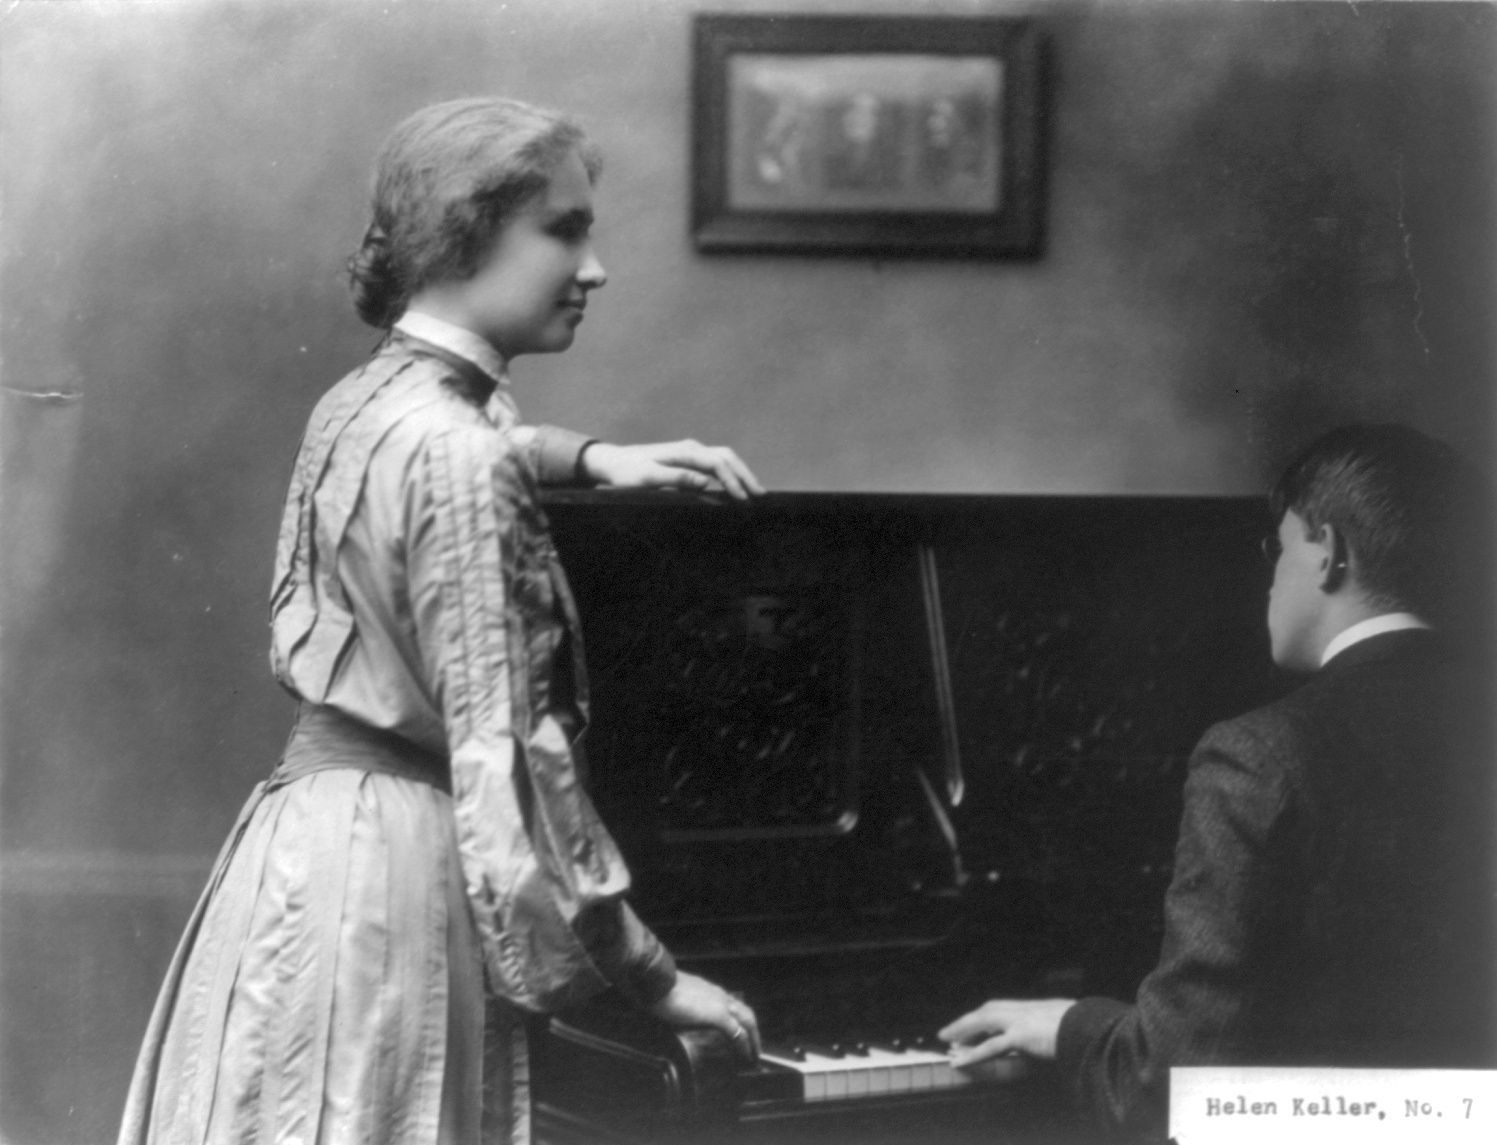 Helen Keller: A Great Lover of Music